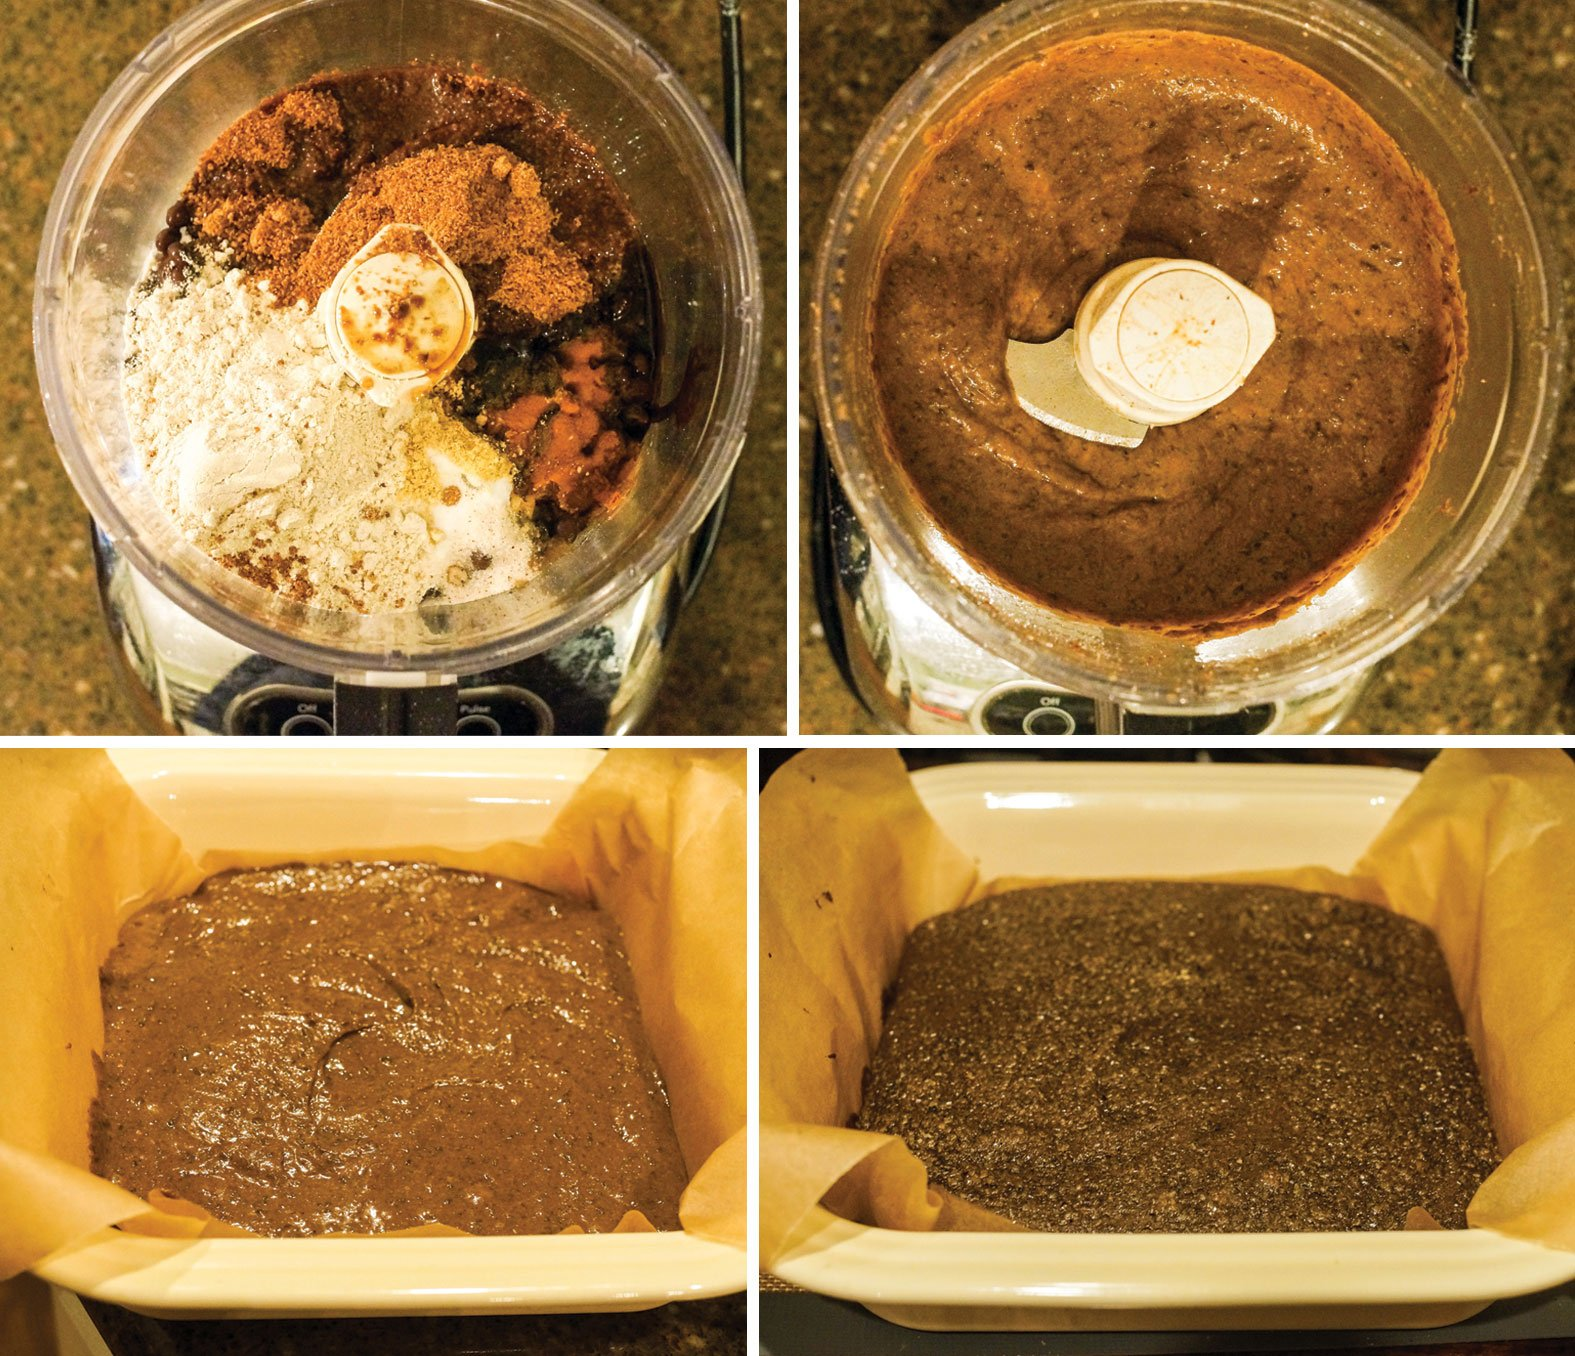 black bean gingerbread mix in a food processor and in a baking pan